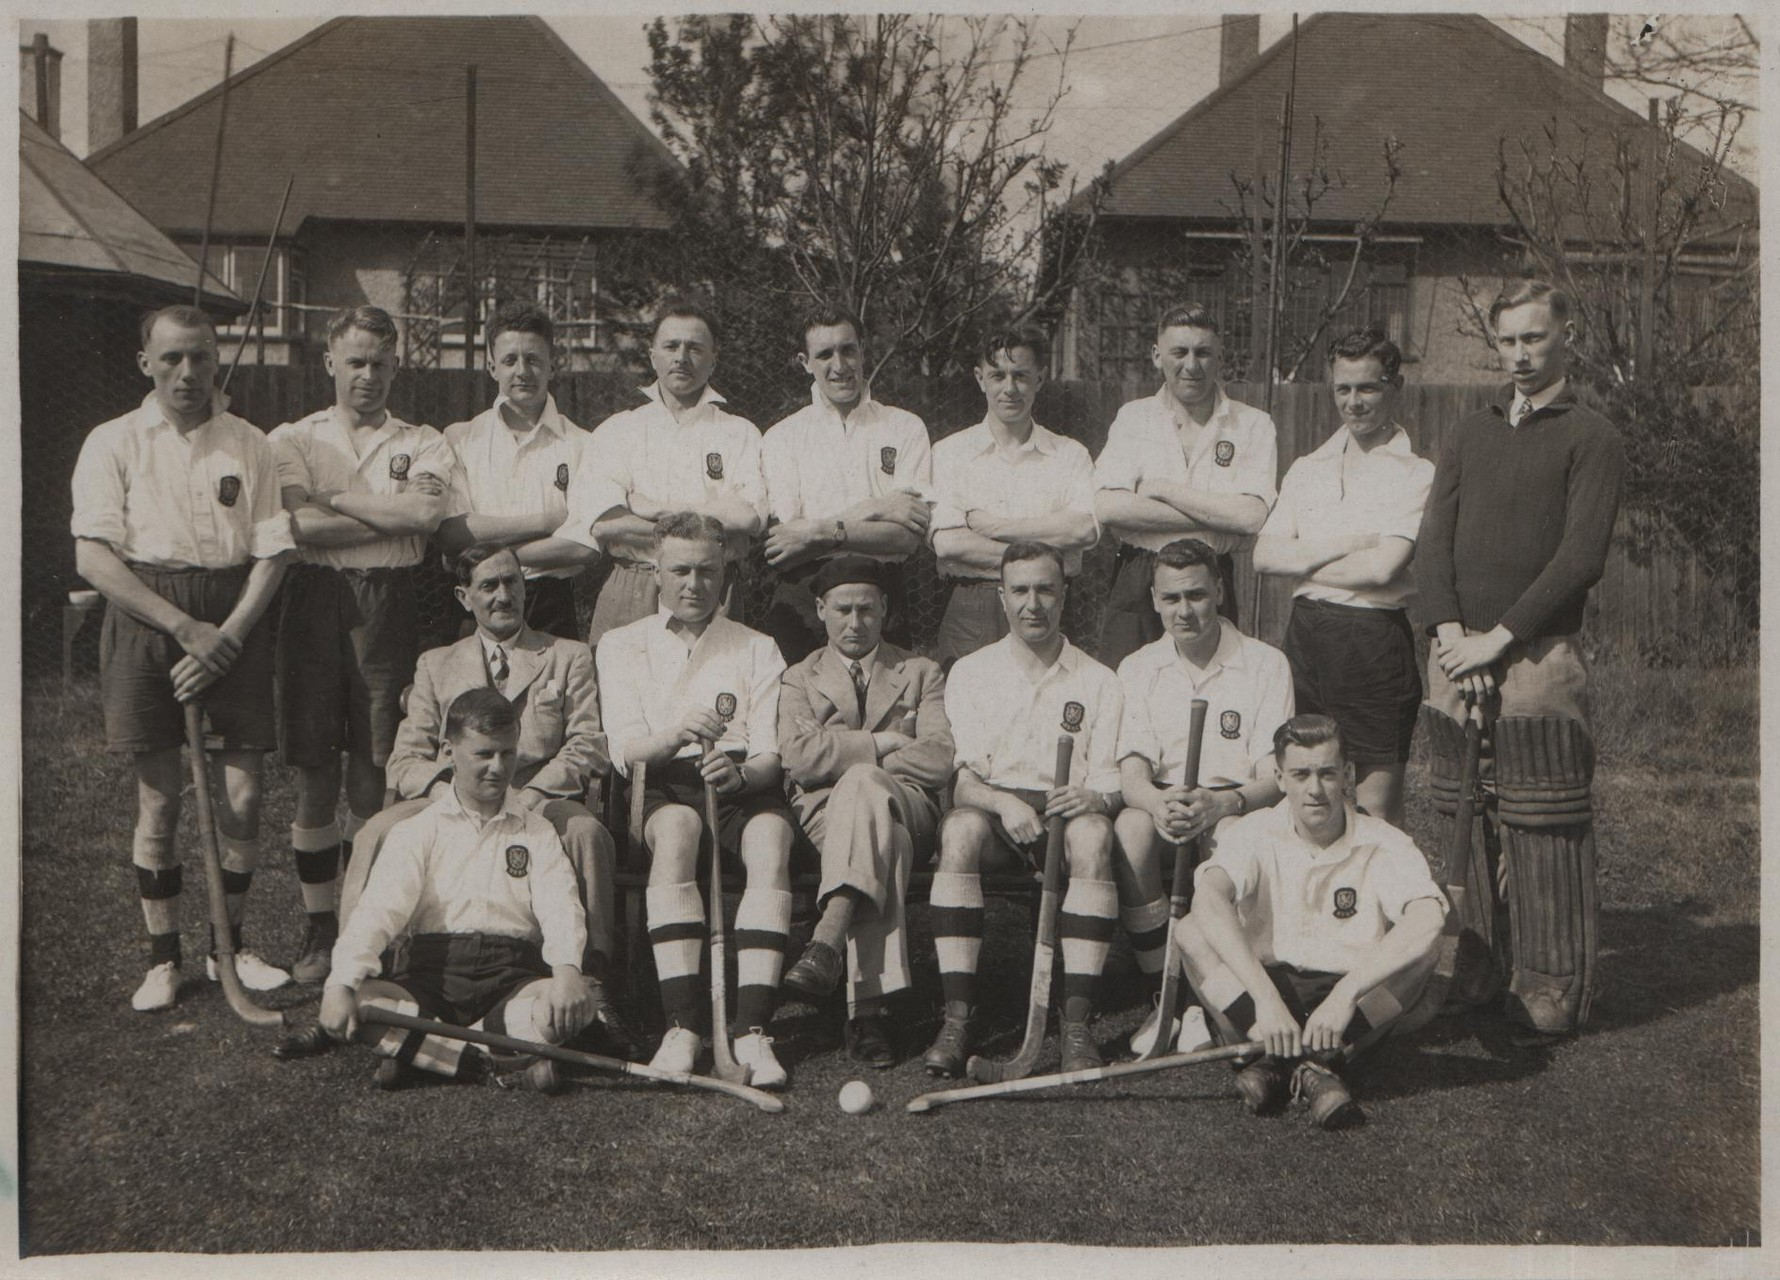 1938 Borough Treasurer's NALGO hockey team, David far right